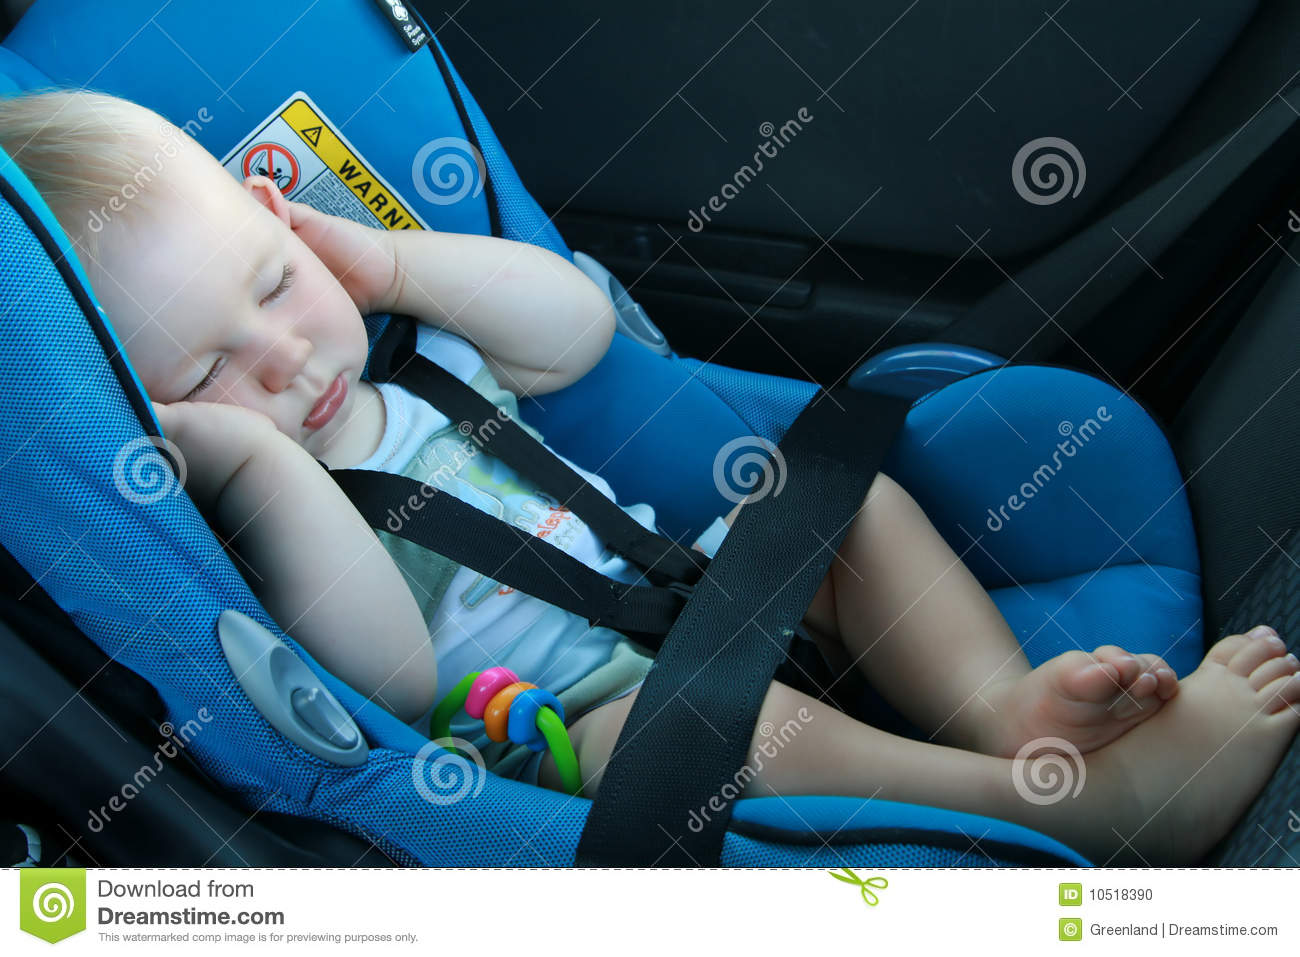 Baby Sleeping In Car Seat Stock Photo - Image: 10518390